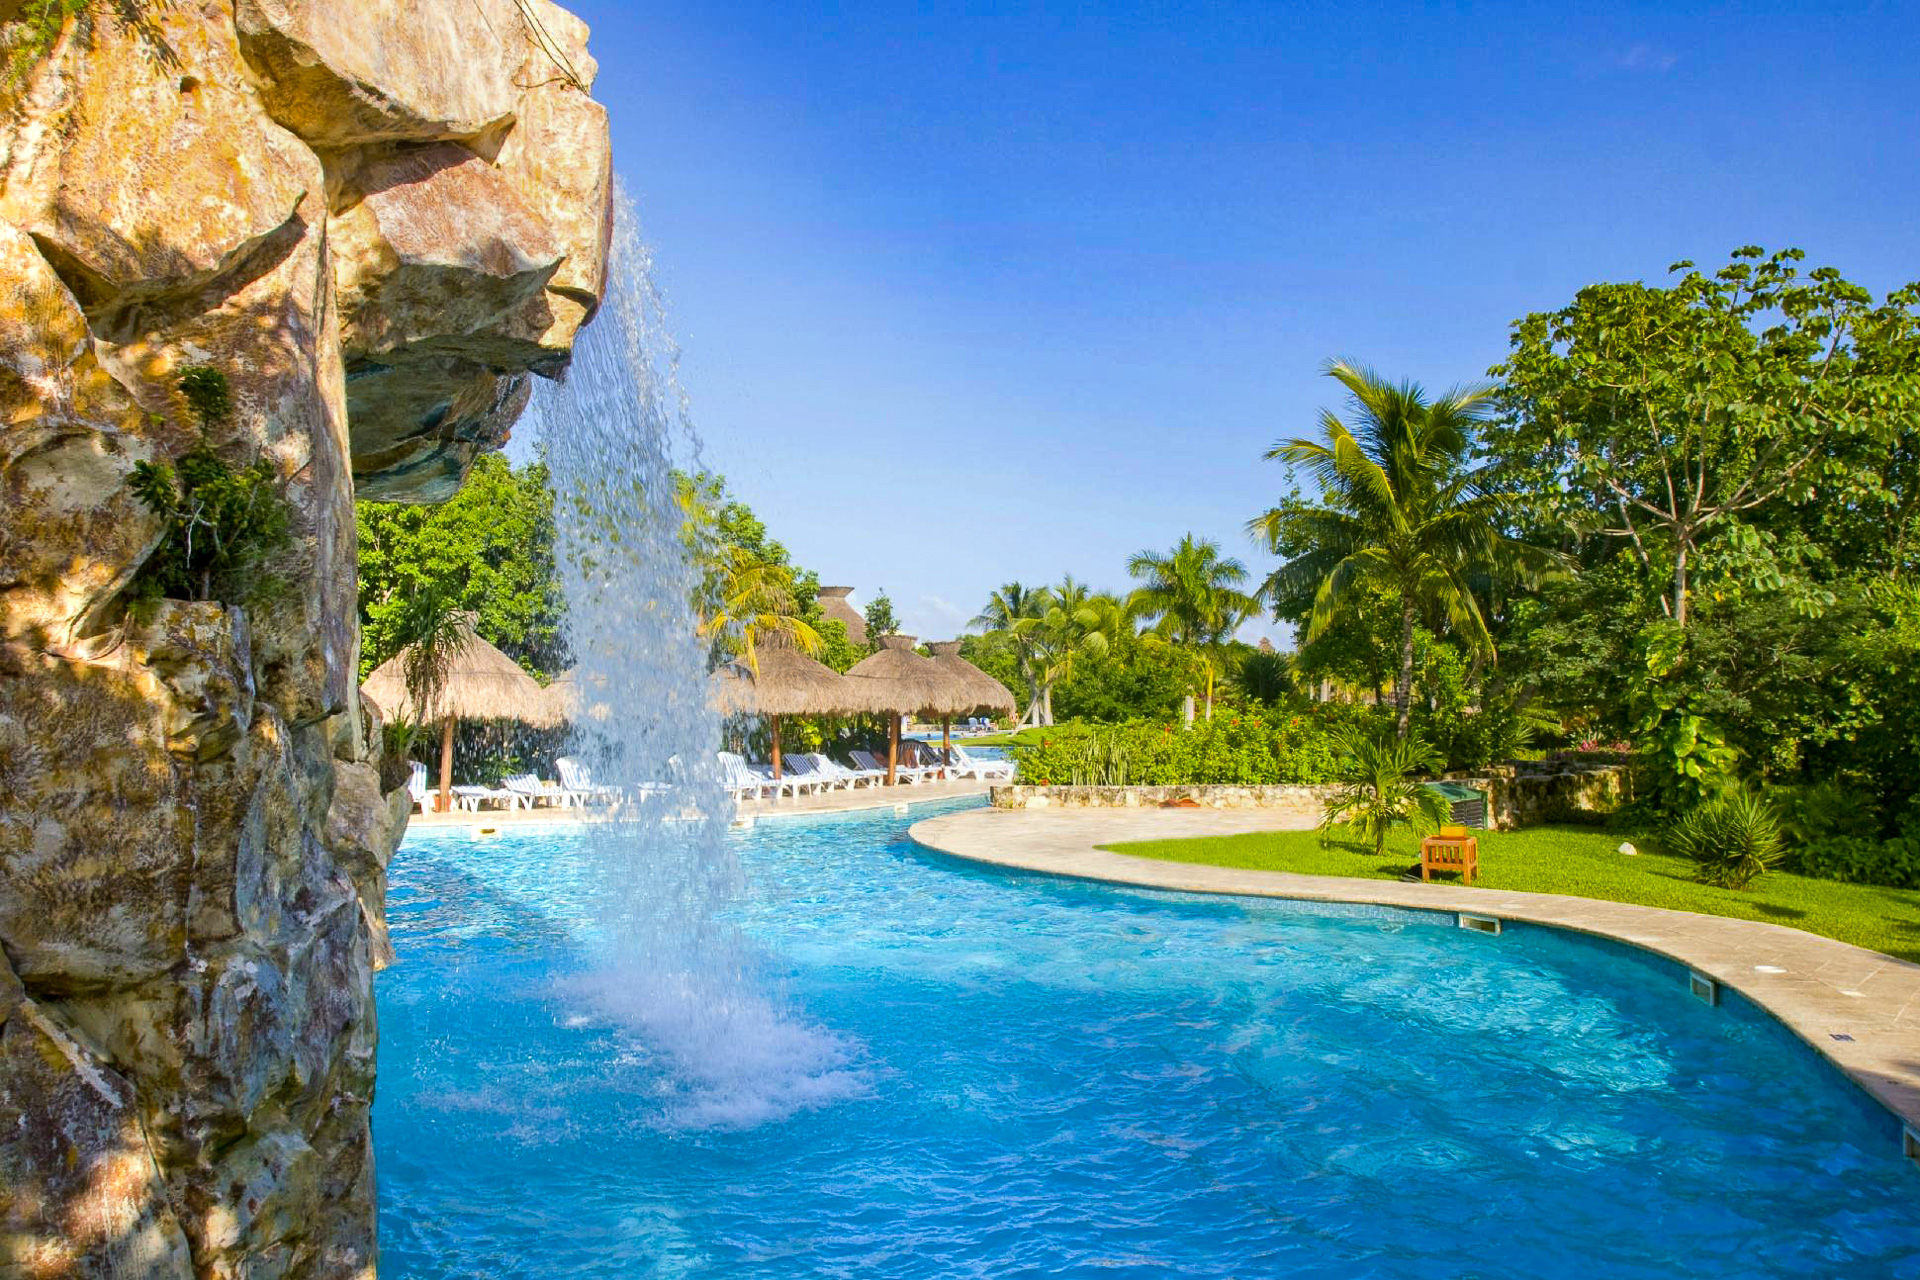 Pool fountain at Iberostar Paraiso Beach; Courtesy of IBEROSTAR Paraiso Beach